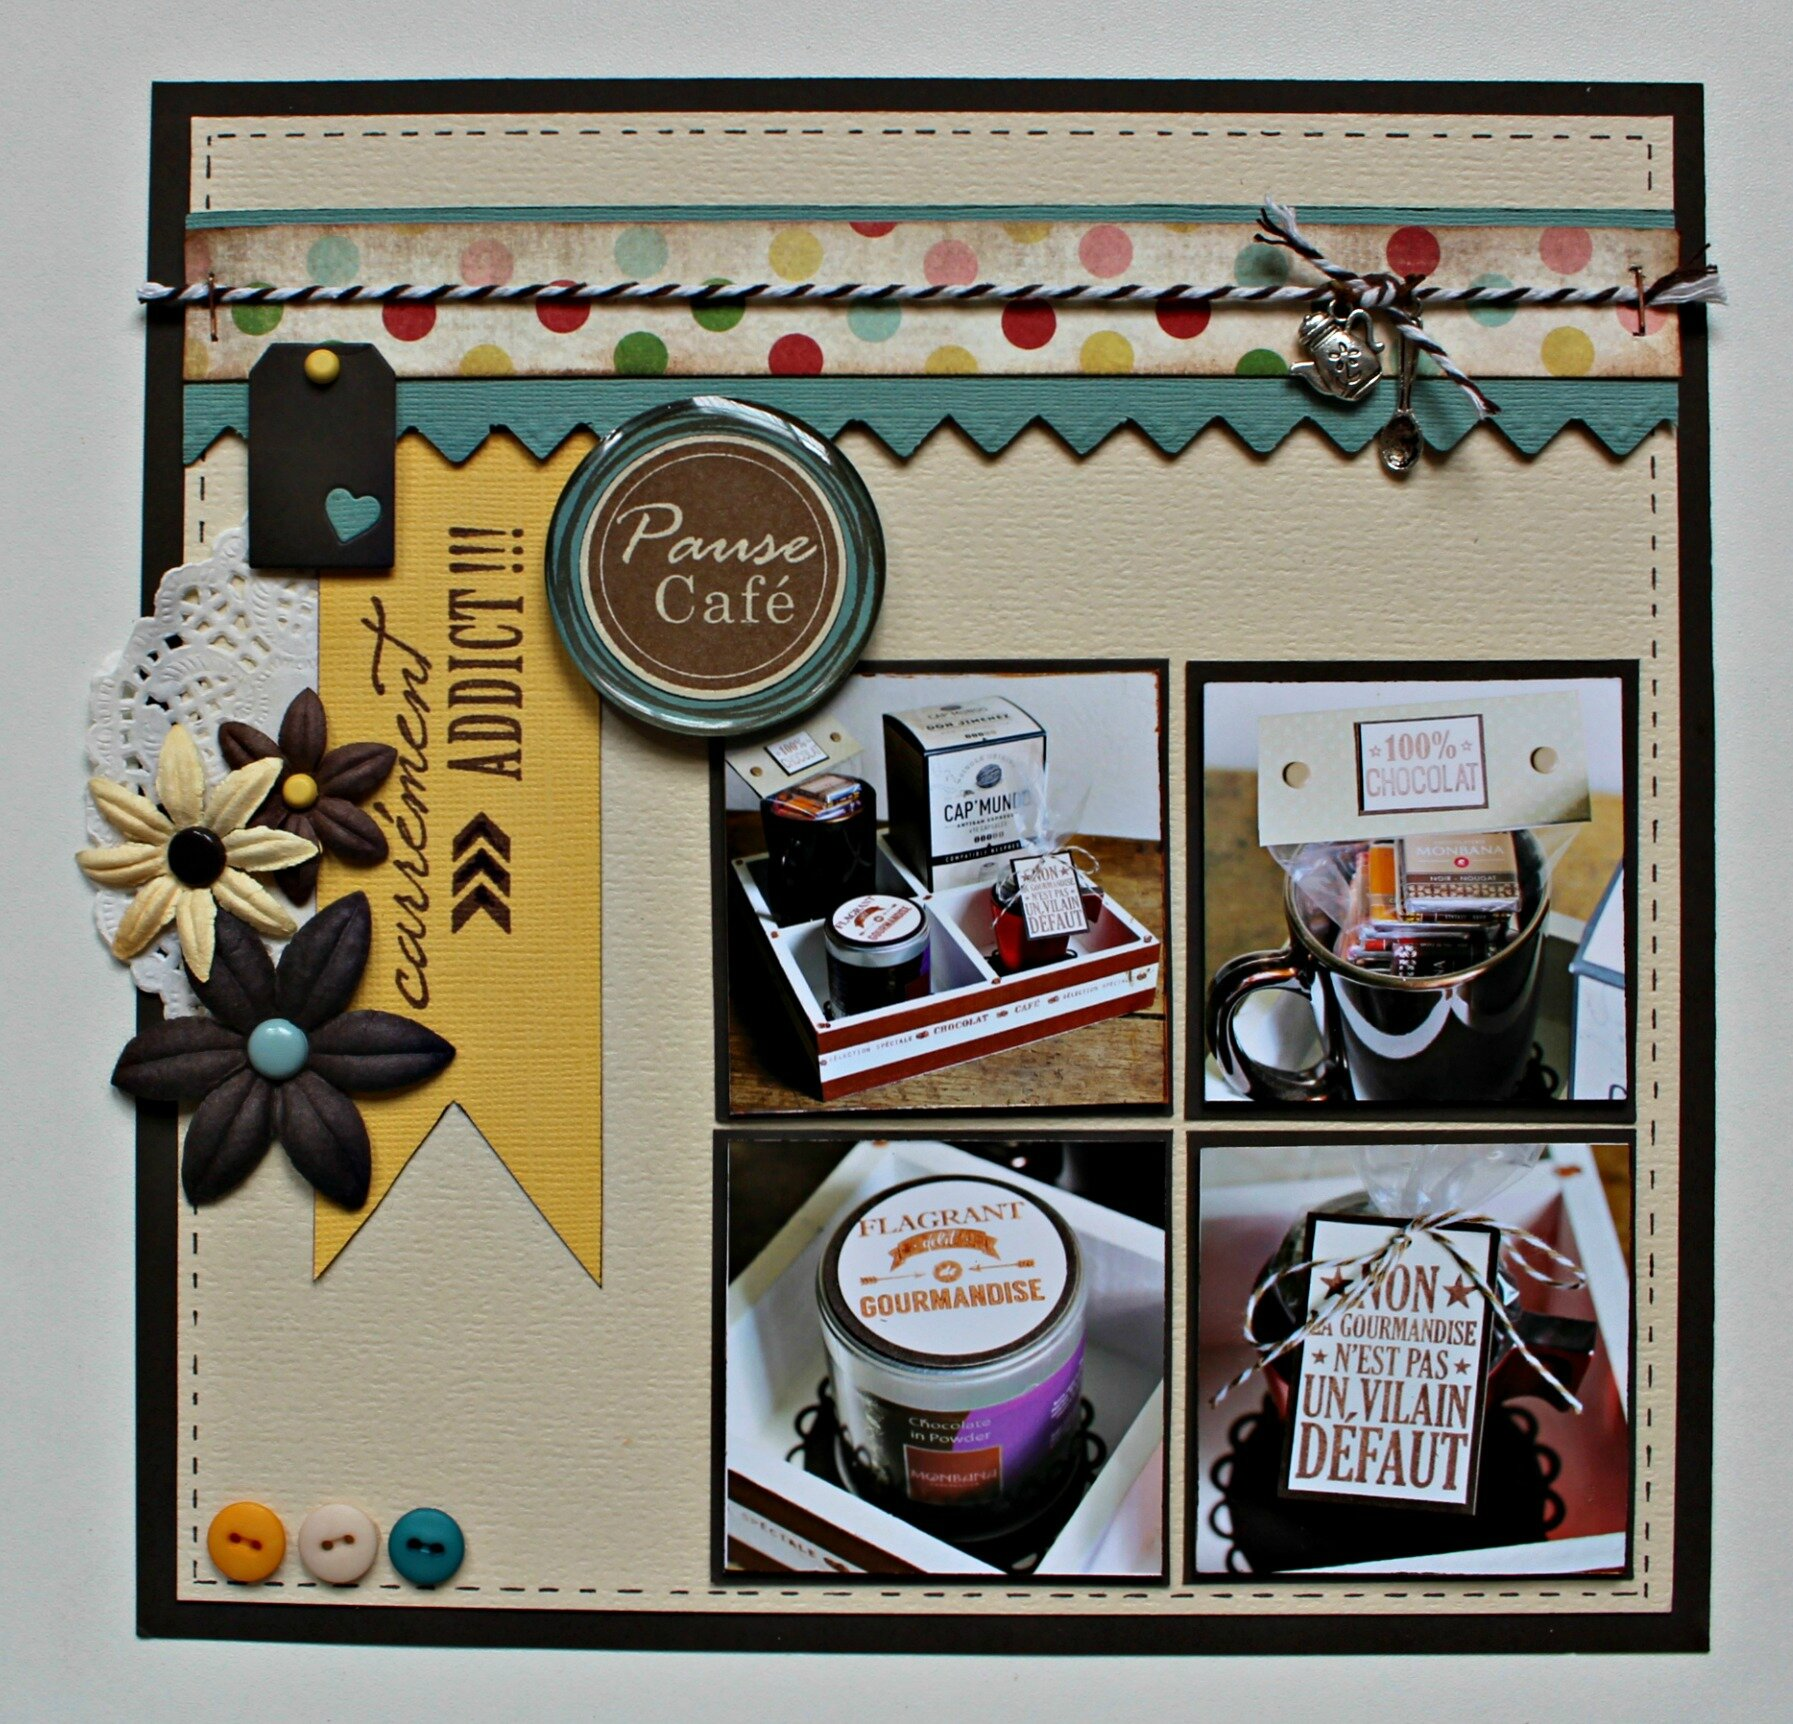 Page multi challenge : Kit Multi-Pages Juillet 2014, scraplift & nouveautés tampons bois Swirlcards par Is@ de Belley